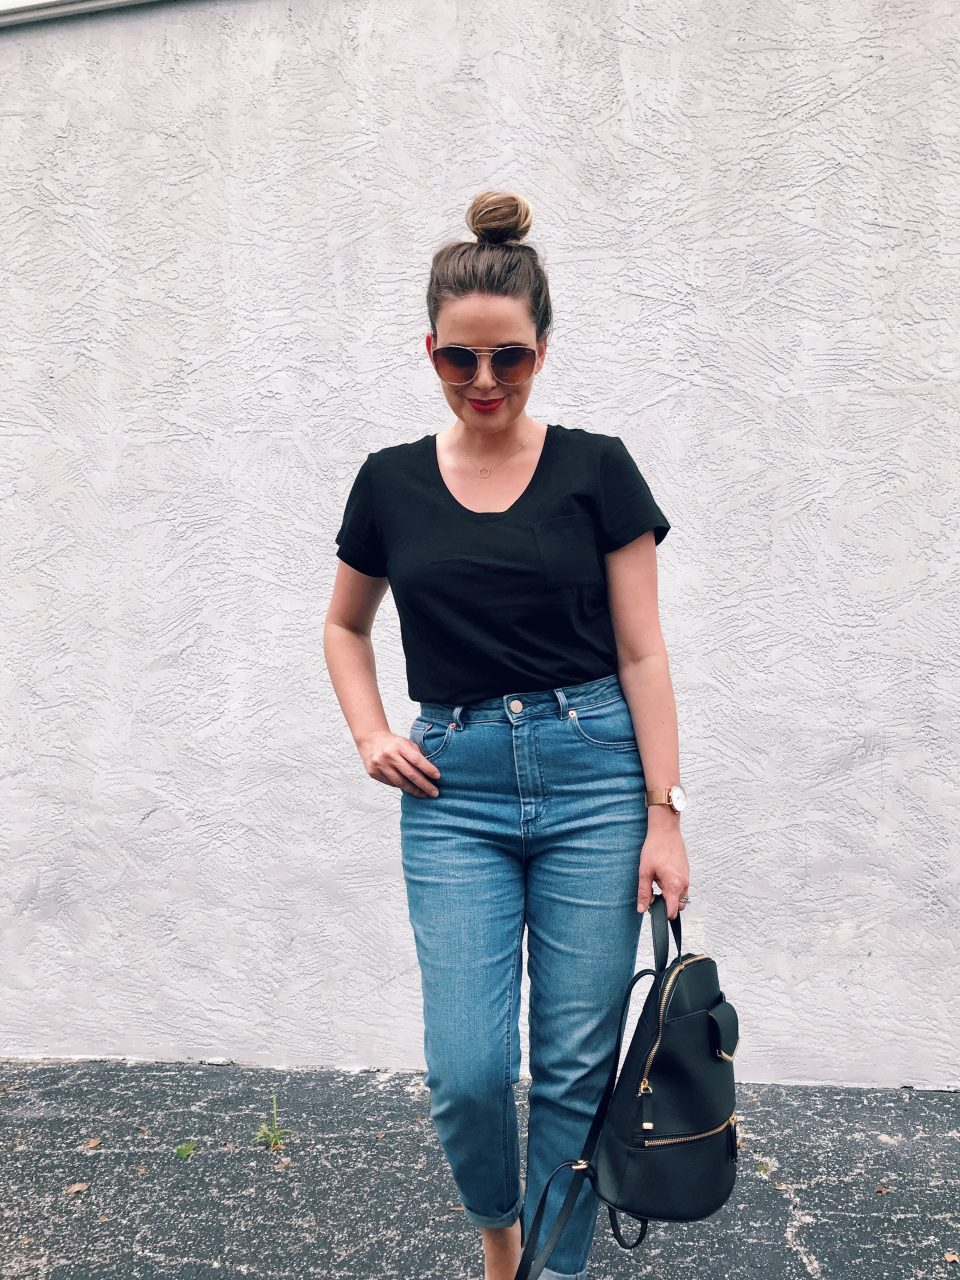 ASOS Farleigh Slim Mom Jeans in Prince Wash, Modern Mom Jeans, High Waist Denim Trends, Style Blog